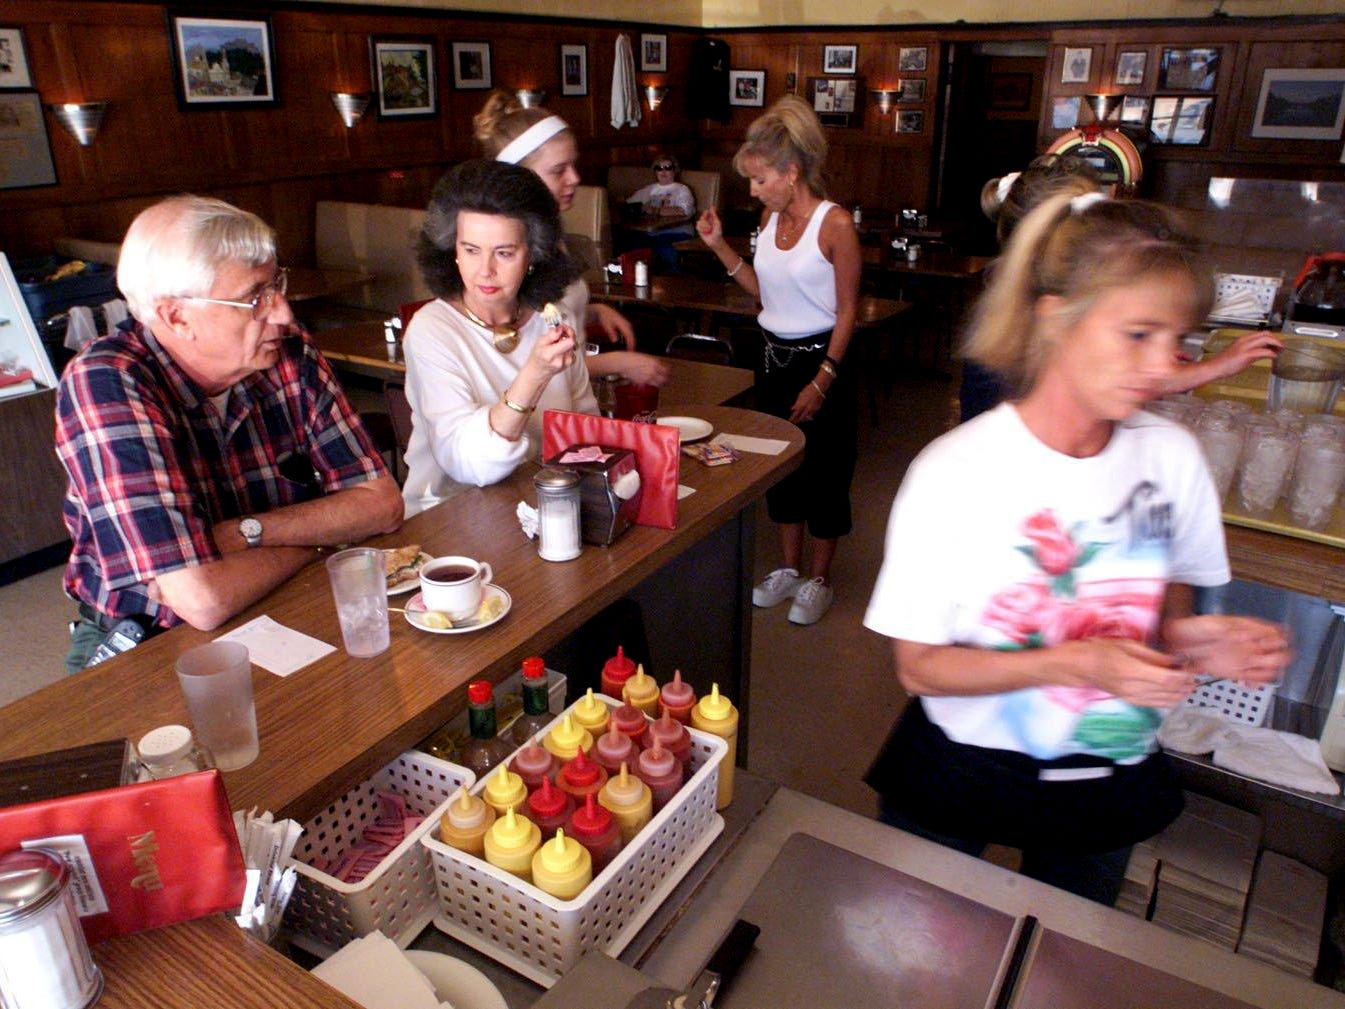 Wyatt Allen, left, 63 and Glenda Higgins, 64, both been faithful patrons for several years, enjoy their meal at Vandyland May 14, 2002.